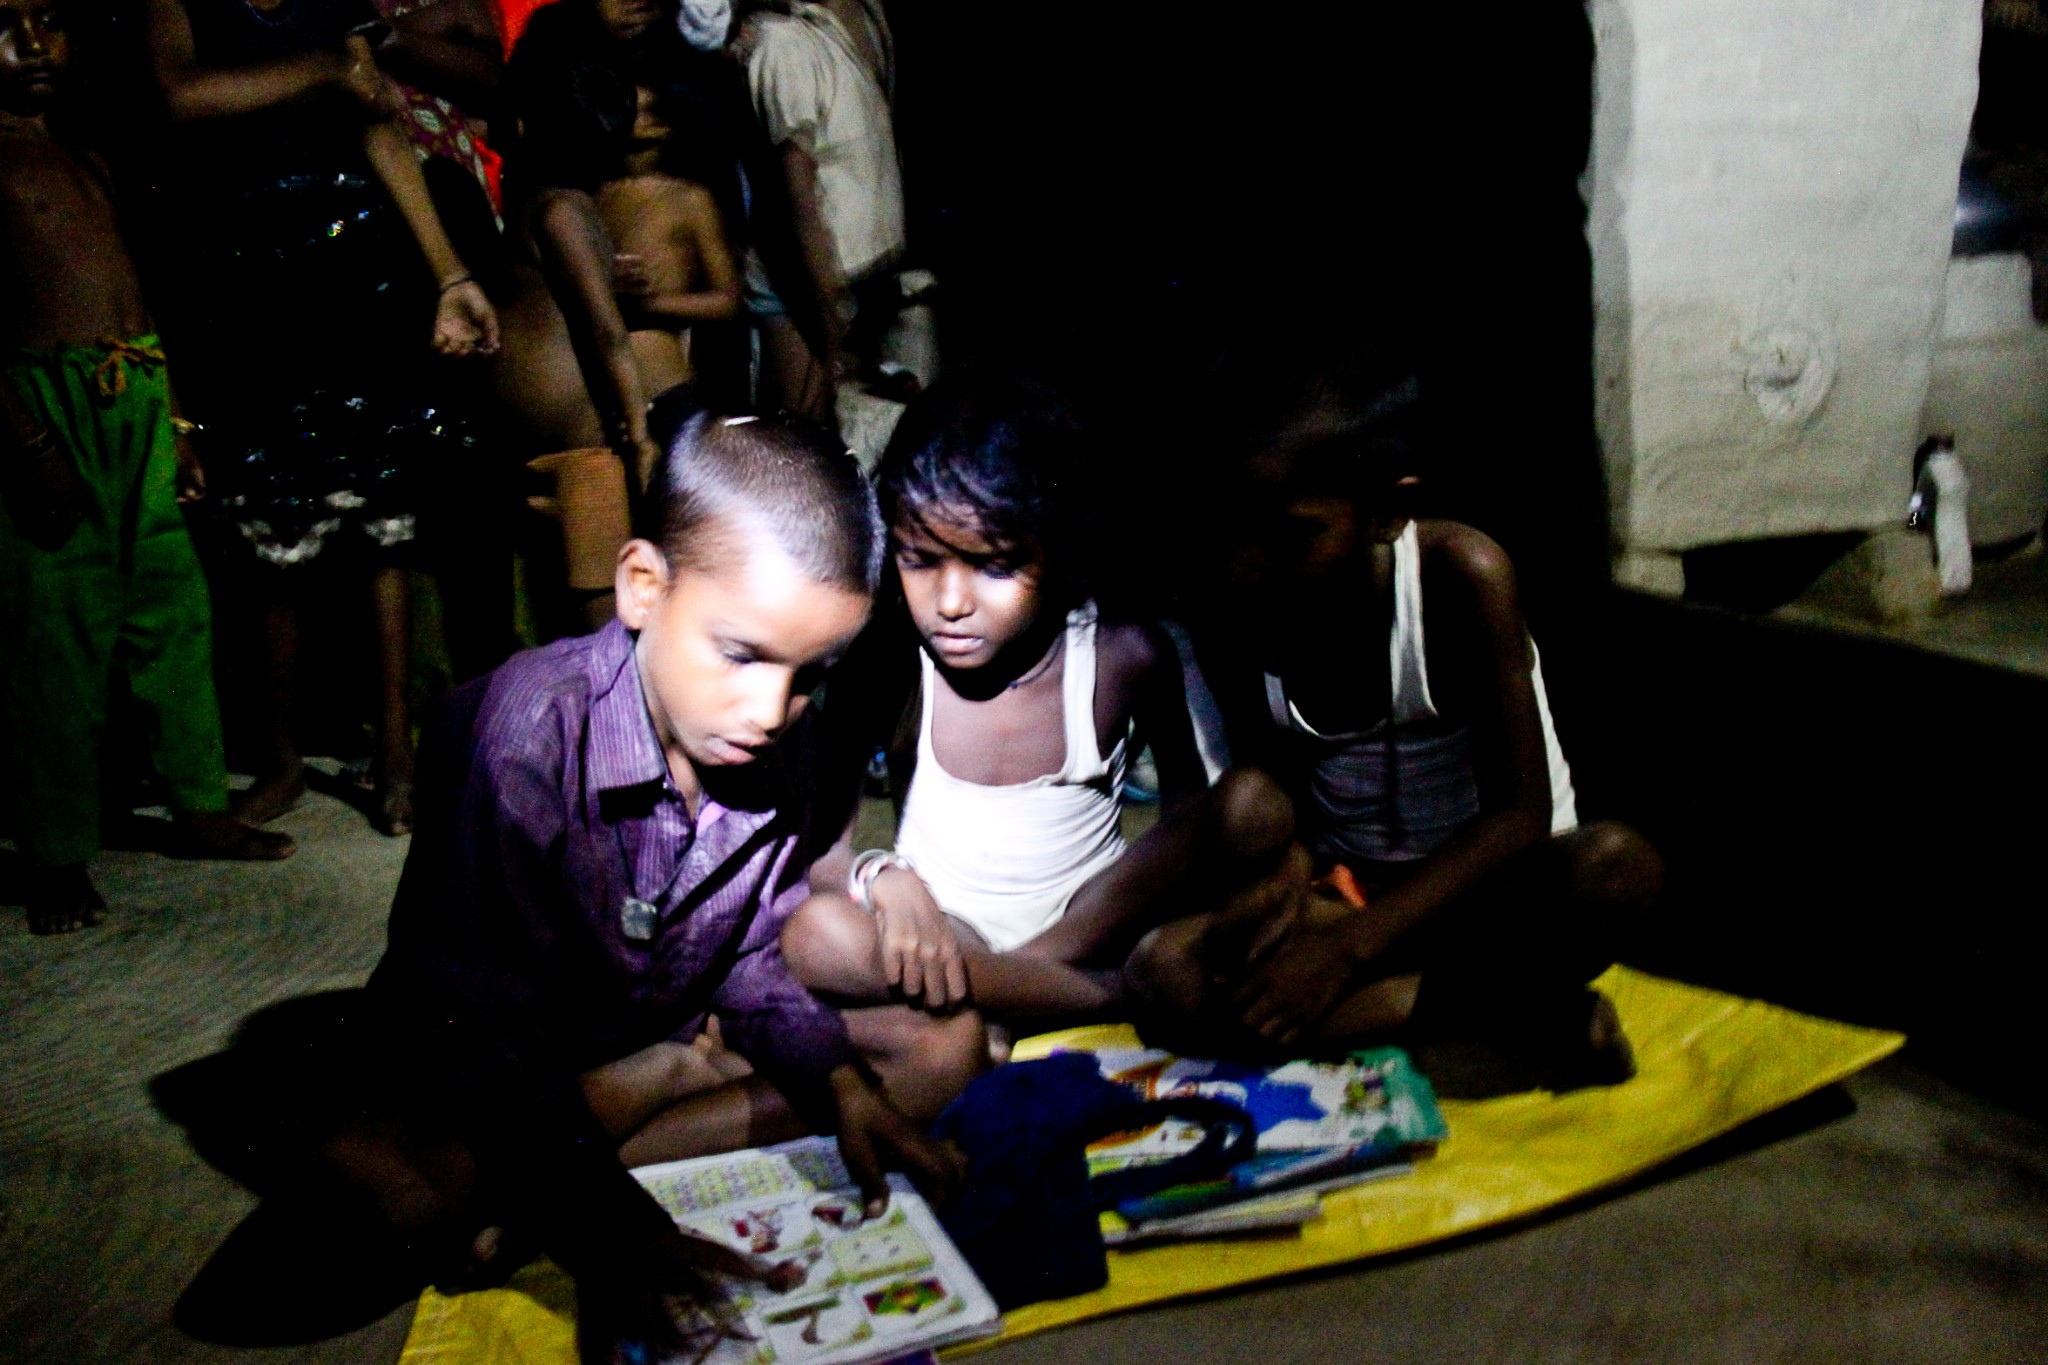 <p>Electricity access is crucial to closing education and development gaps. Photo by DIVatUSA/Flickr</p>